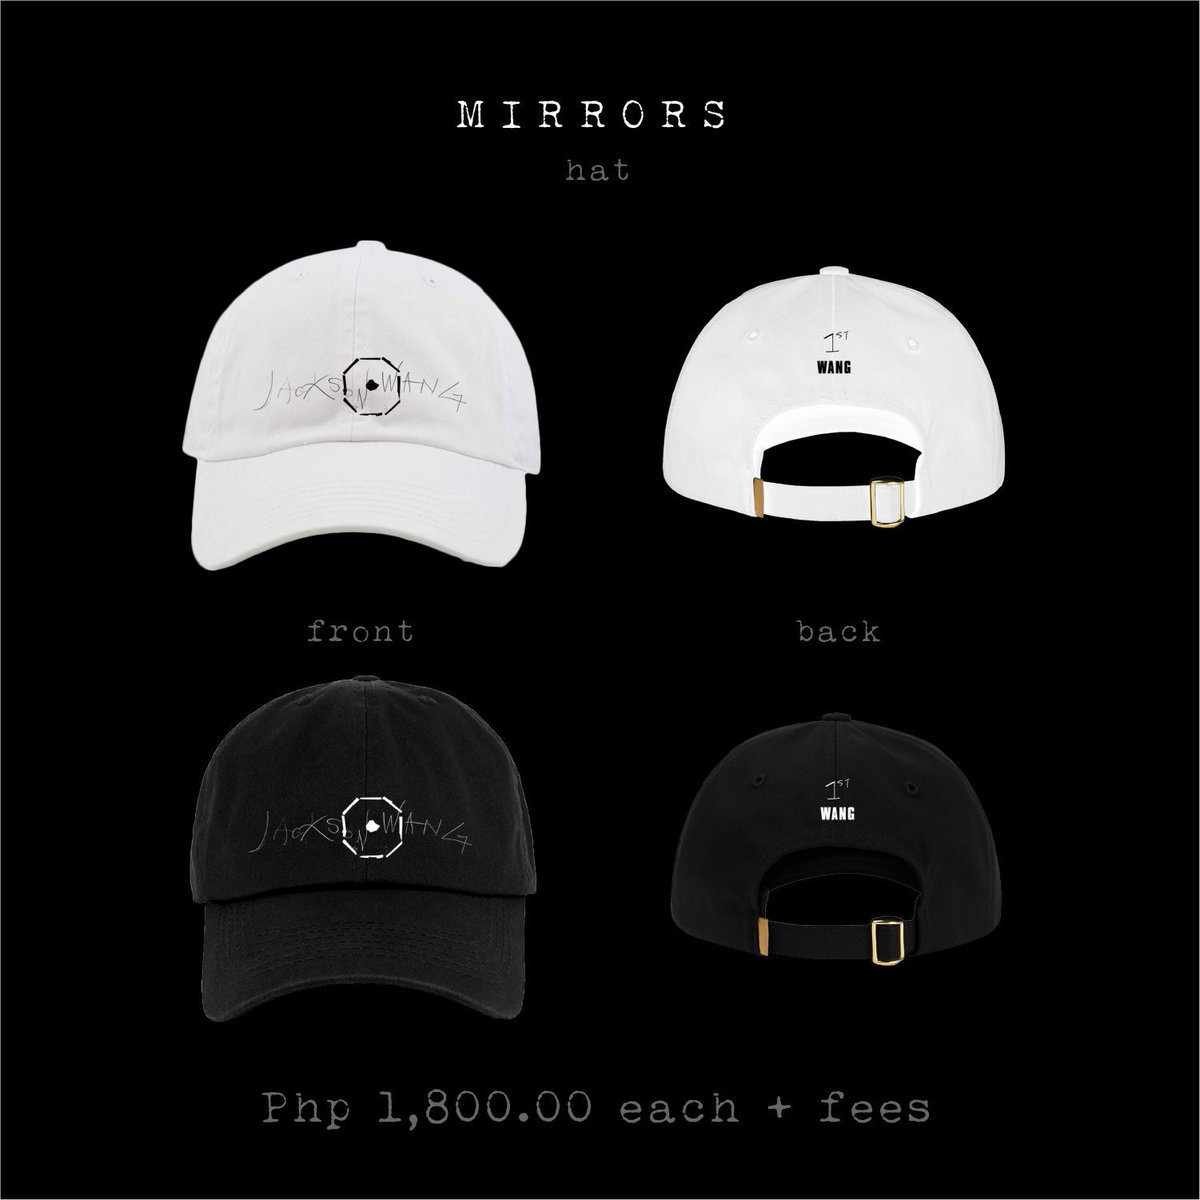 #SeoultangMNL_GO We have an extra slot for Mirrors Hat Black. We already ordered this last November. One of our buyers cancelled    PLEASE HELP RT   #GOT7  #GOT7_YouCallingMyName  #GOT7_CallMyName  #jacksonwangmerch #DWAY! #jacksonwang1stalbum #TEAMWANG #王嘉爾 #MIRRORS<br>http://pic.twitter.com/G9ZfRRtEyu